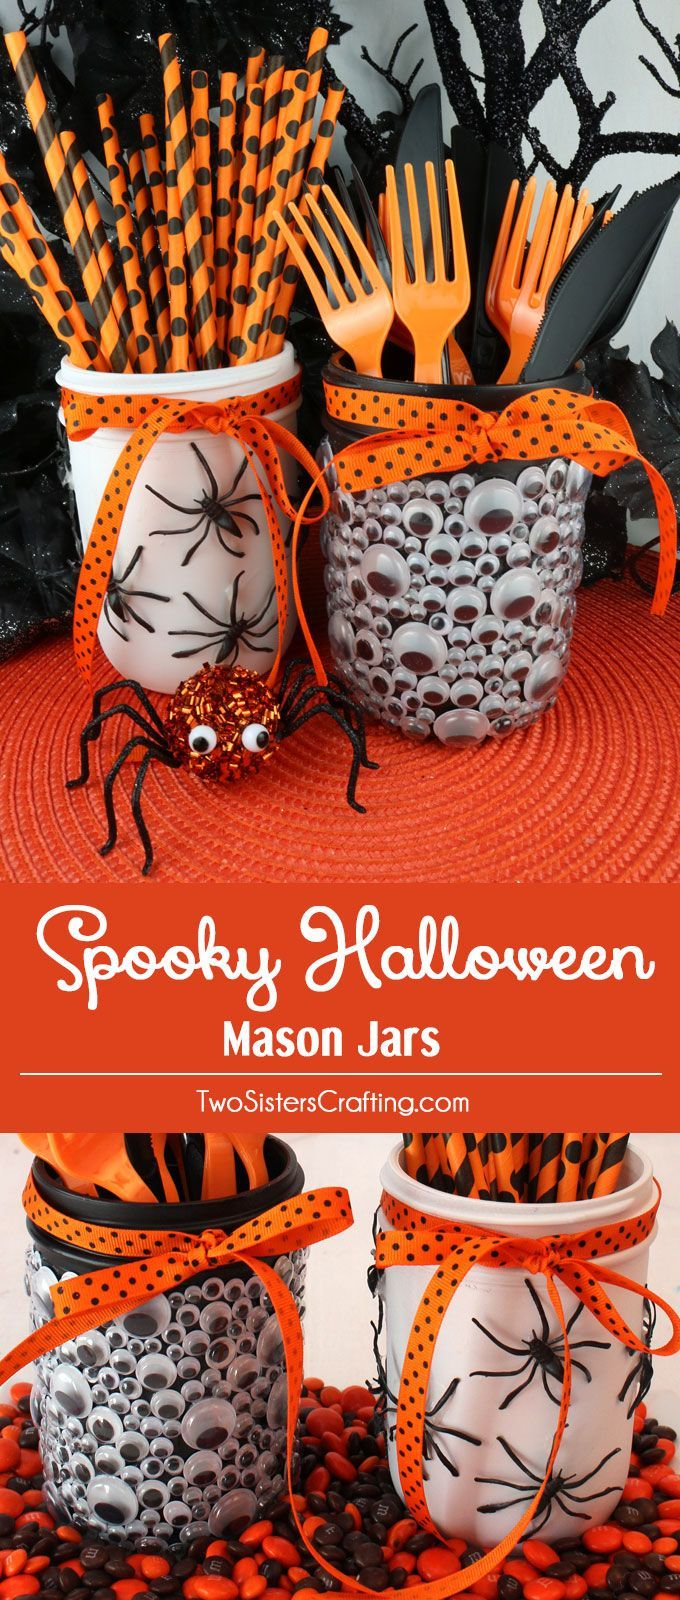 spooky halloween mason jars - Images Of Halloween Decorations